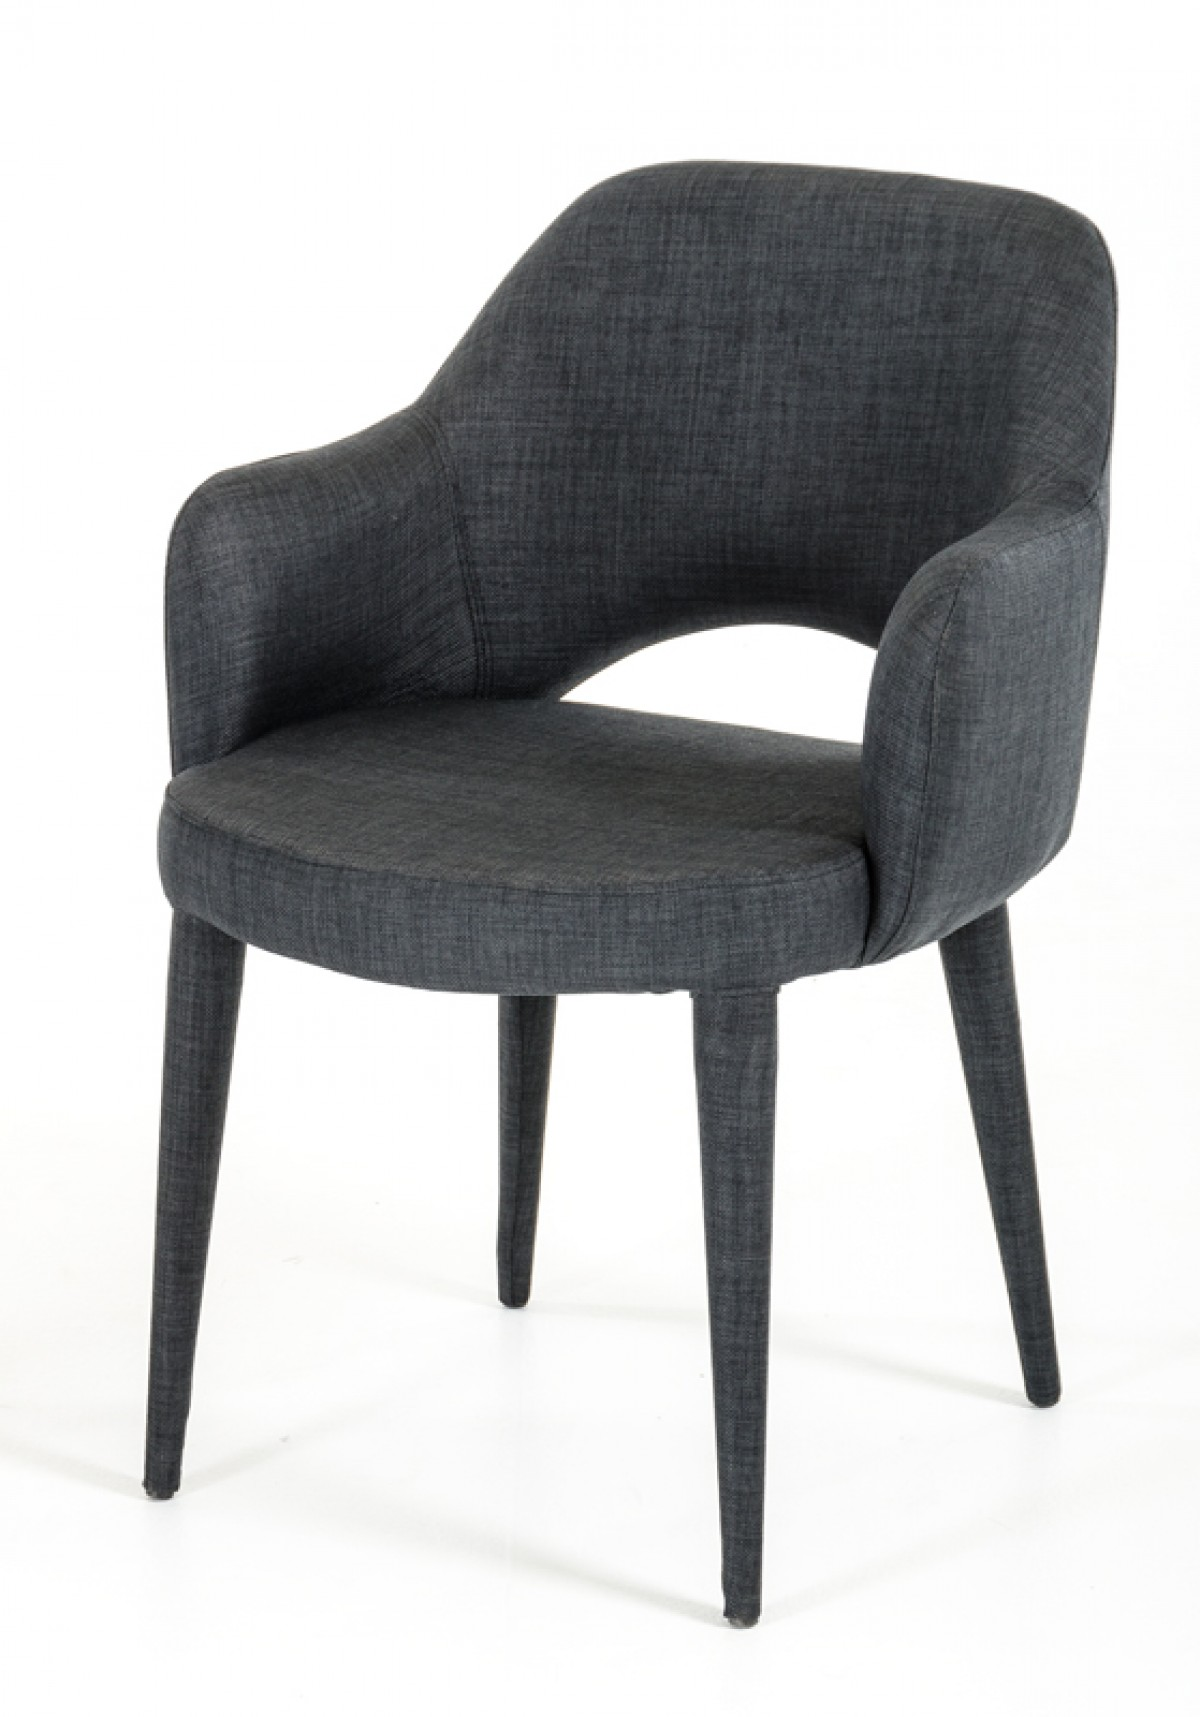 fabric dining chairs homestore and more chair covers modrest williamette modern dark grey